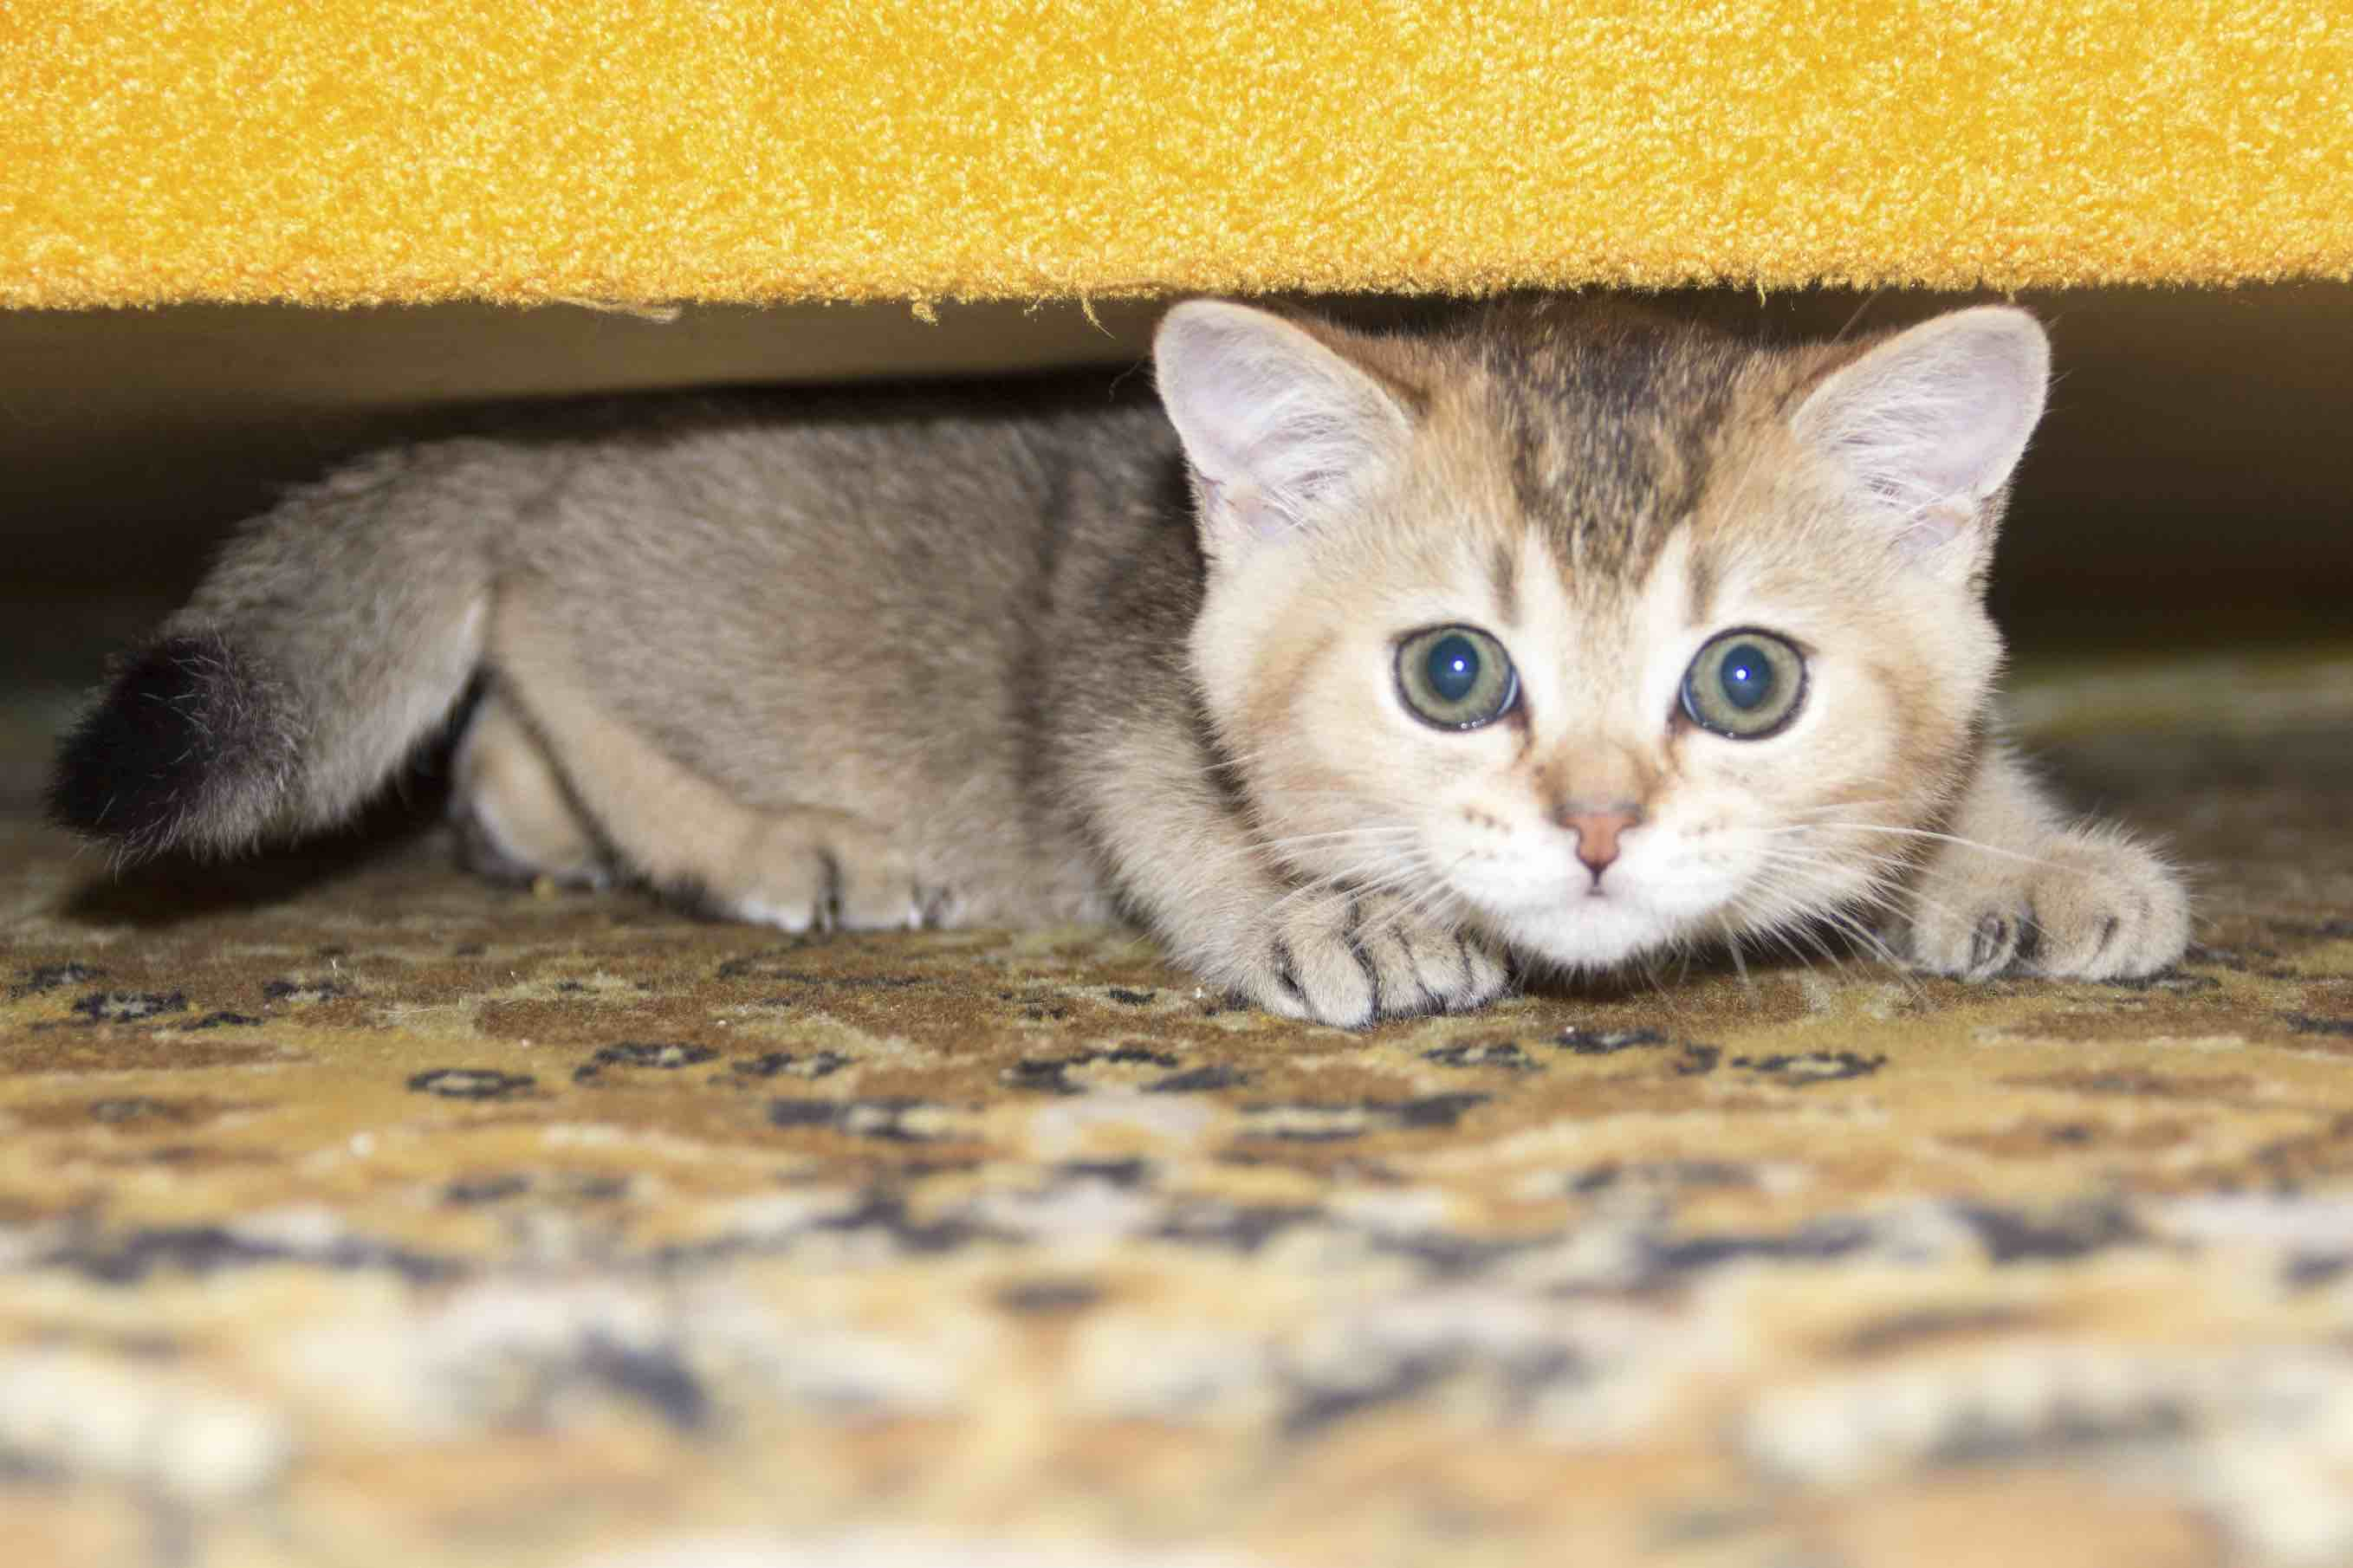 Kitten under the sofa